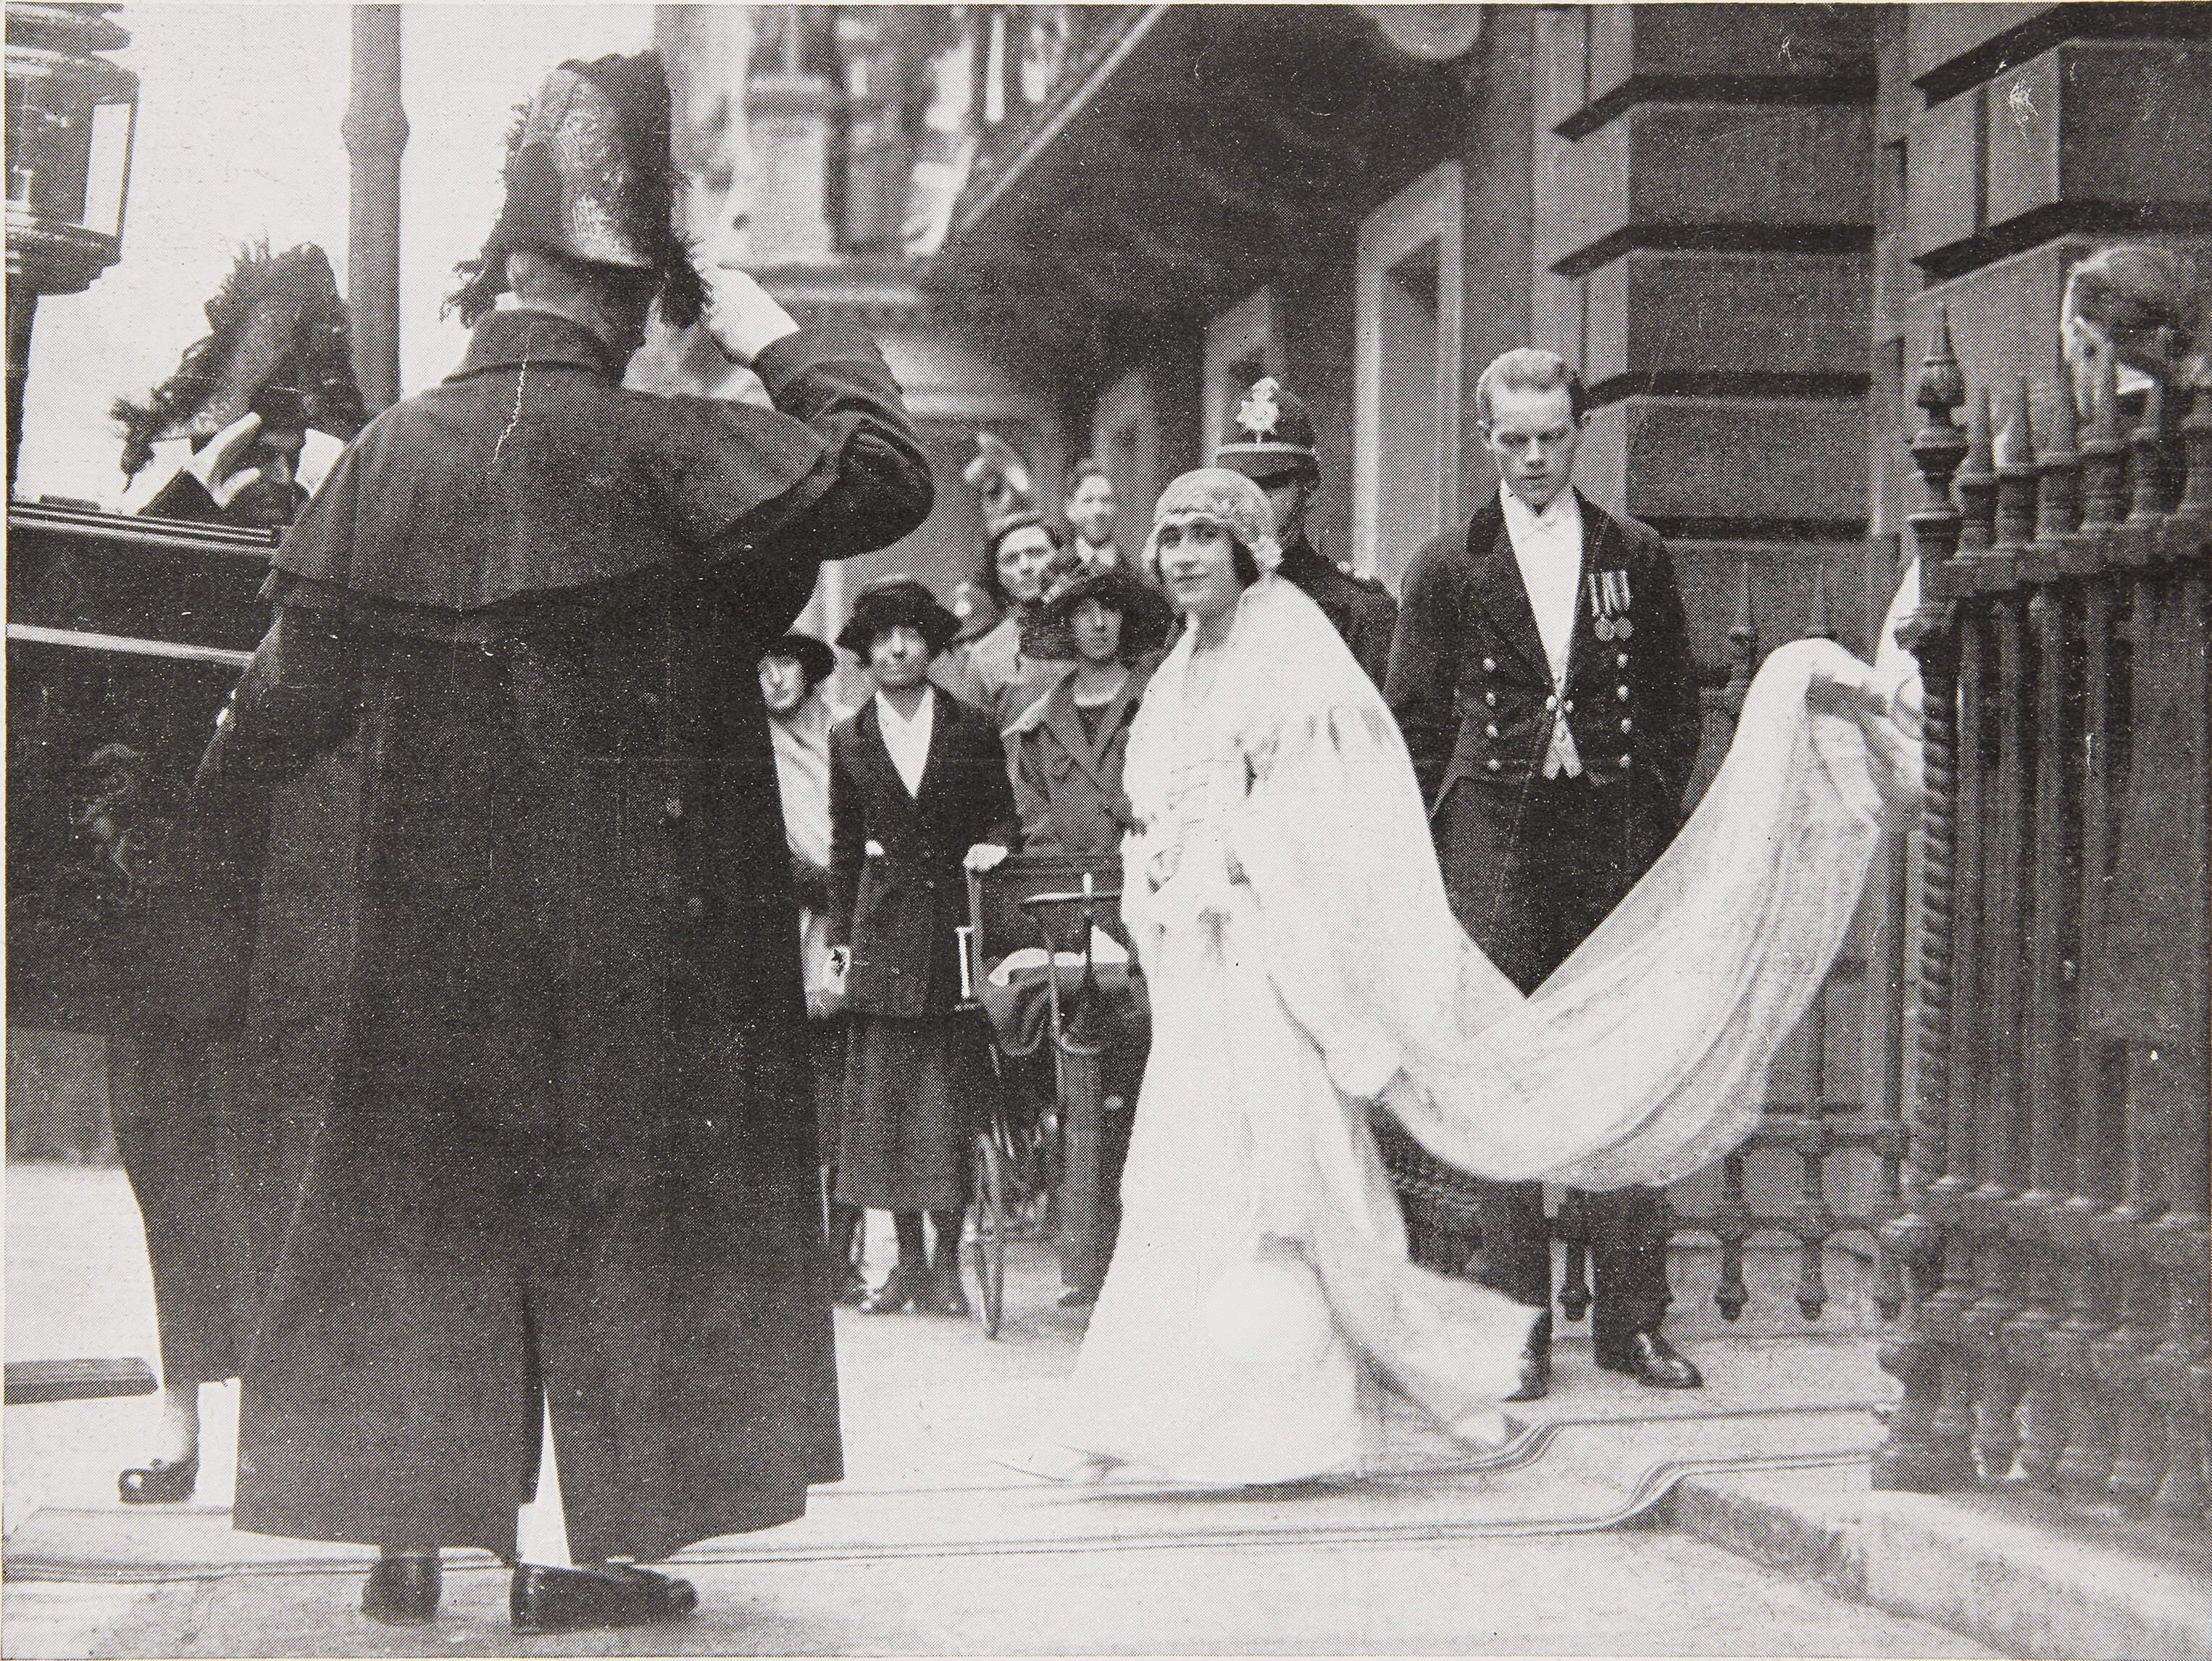 Lady Elizabeth Bowes Lyon leaving 17 Bruton Street, her family home in London, on her wedding day 26 April 1923